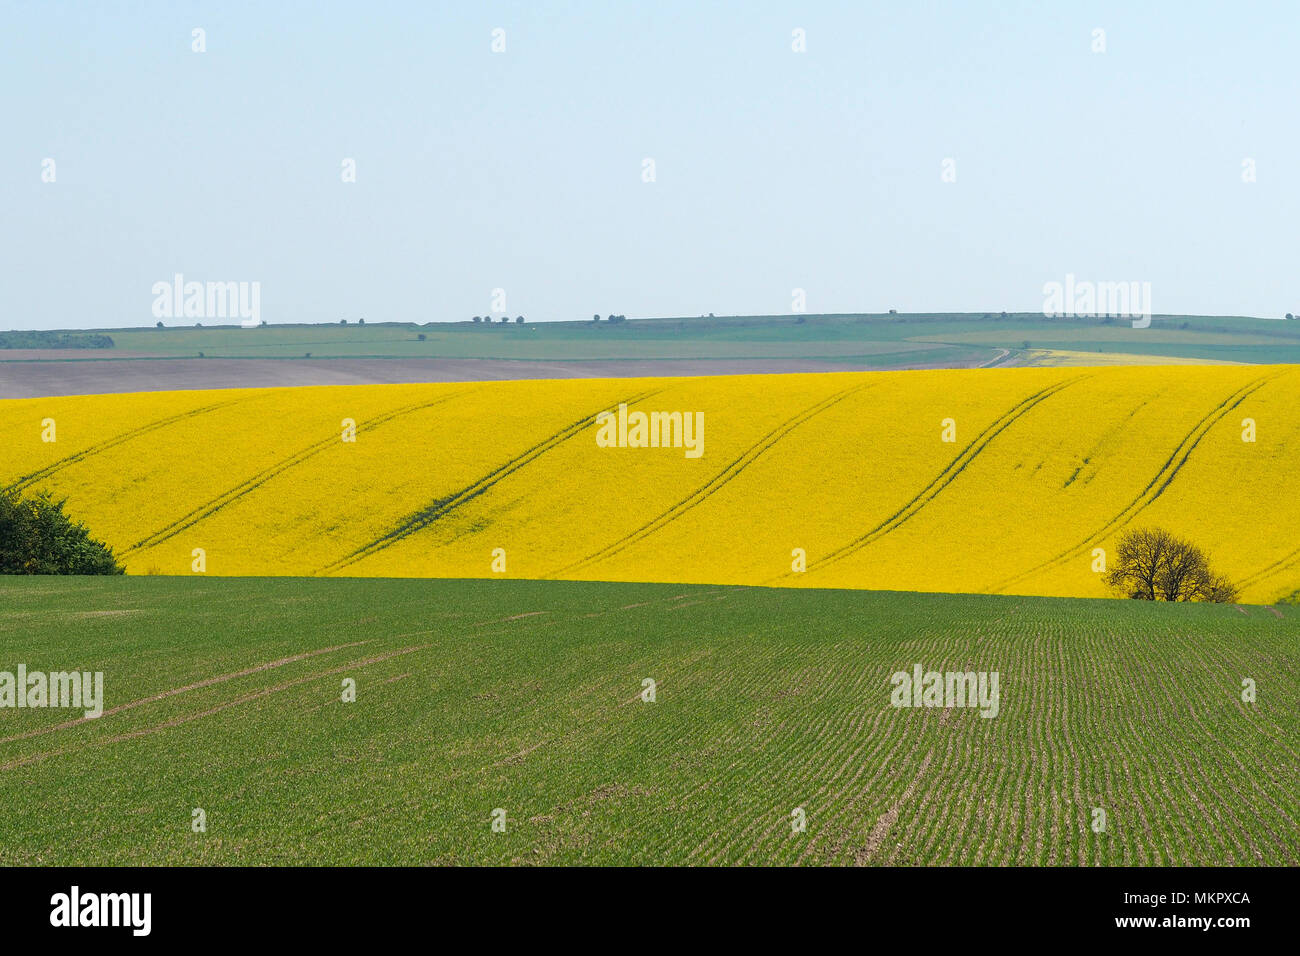 Rapeseed Oil Field - Stock Image